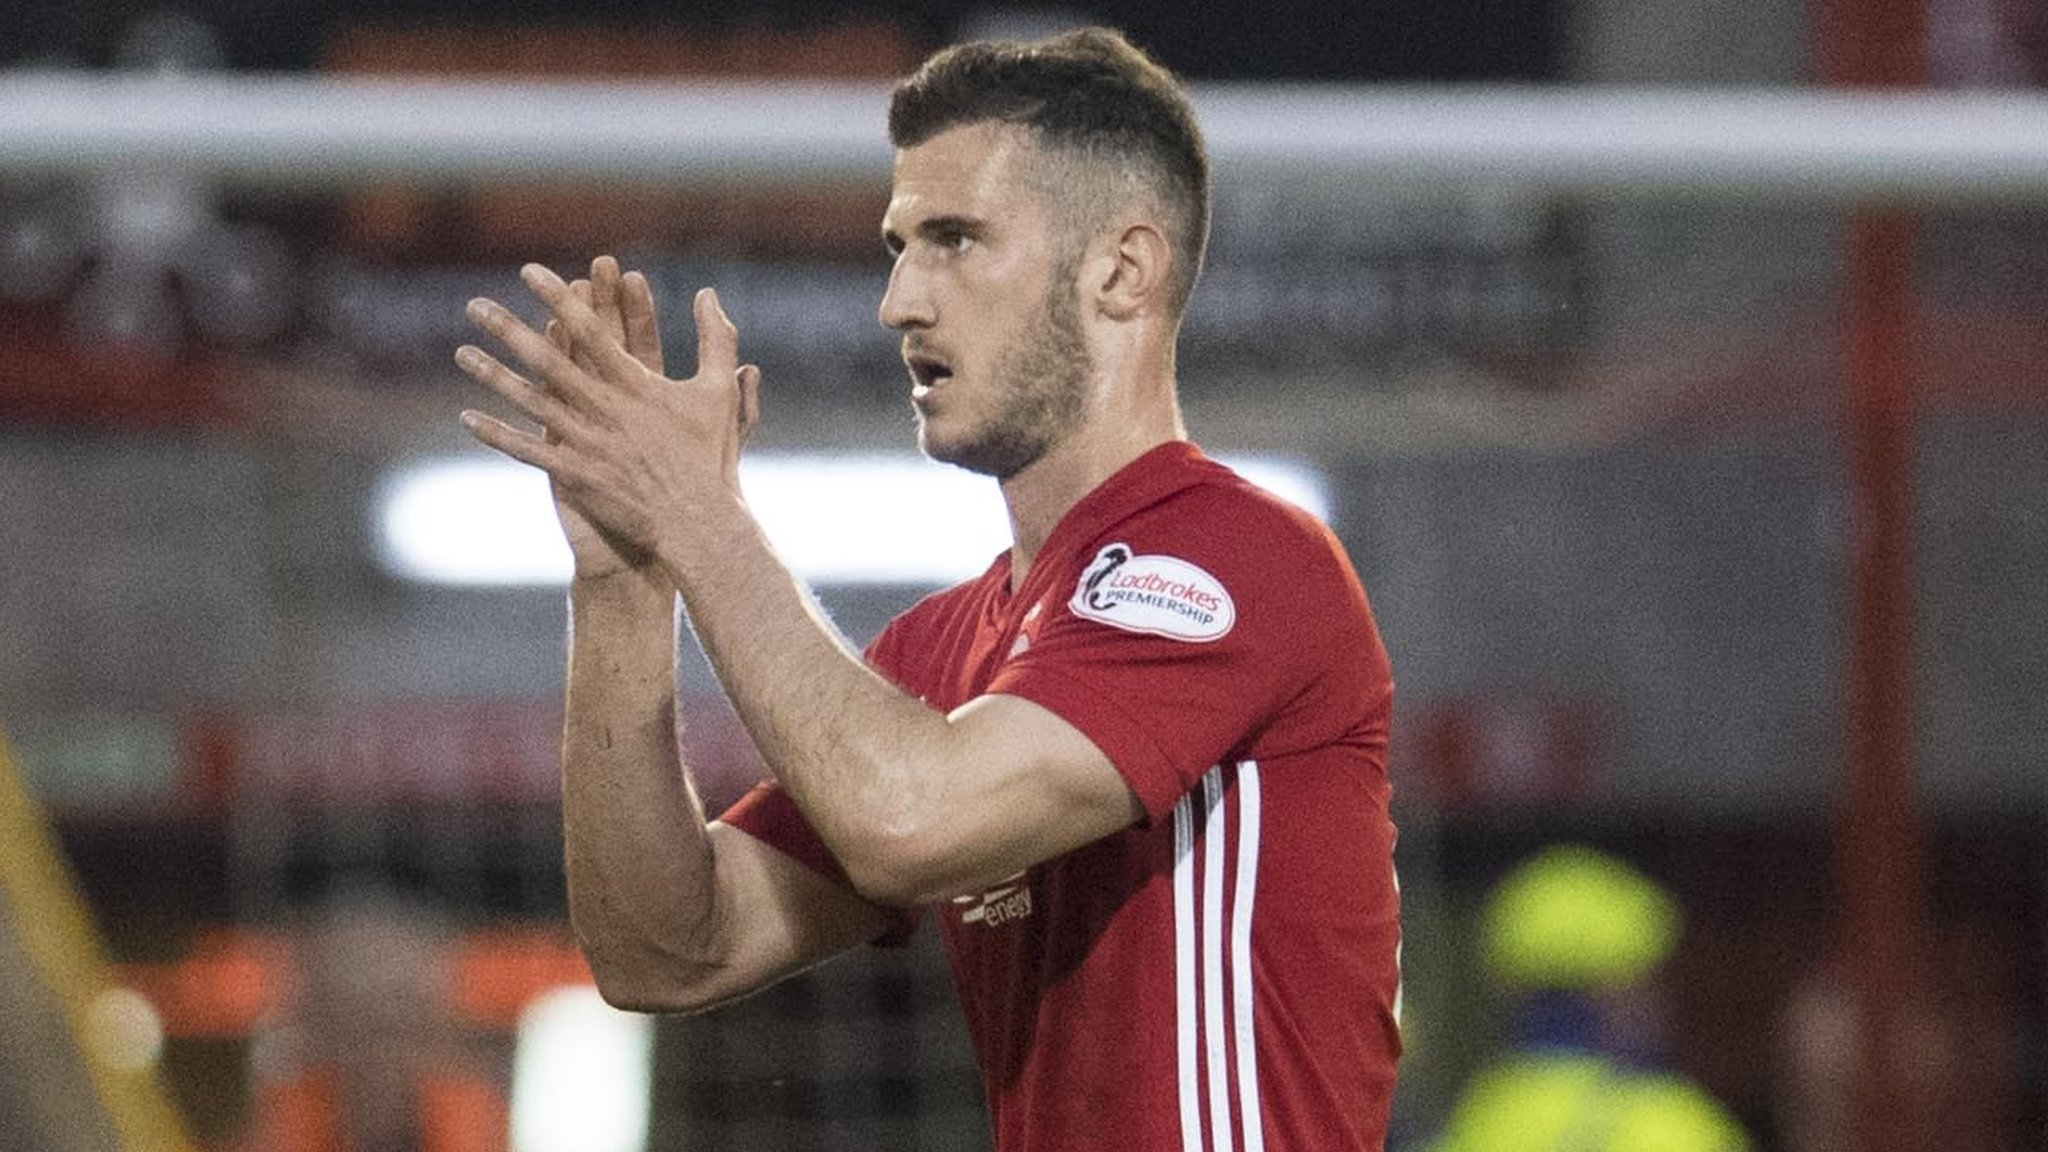 Aberdeen: Dominic Ball says he only showed best form at end of season